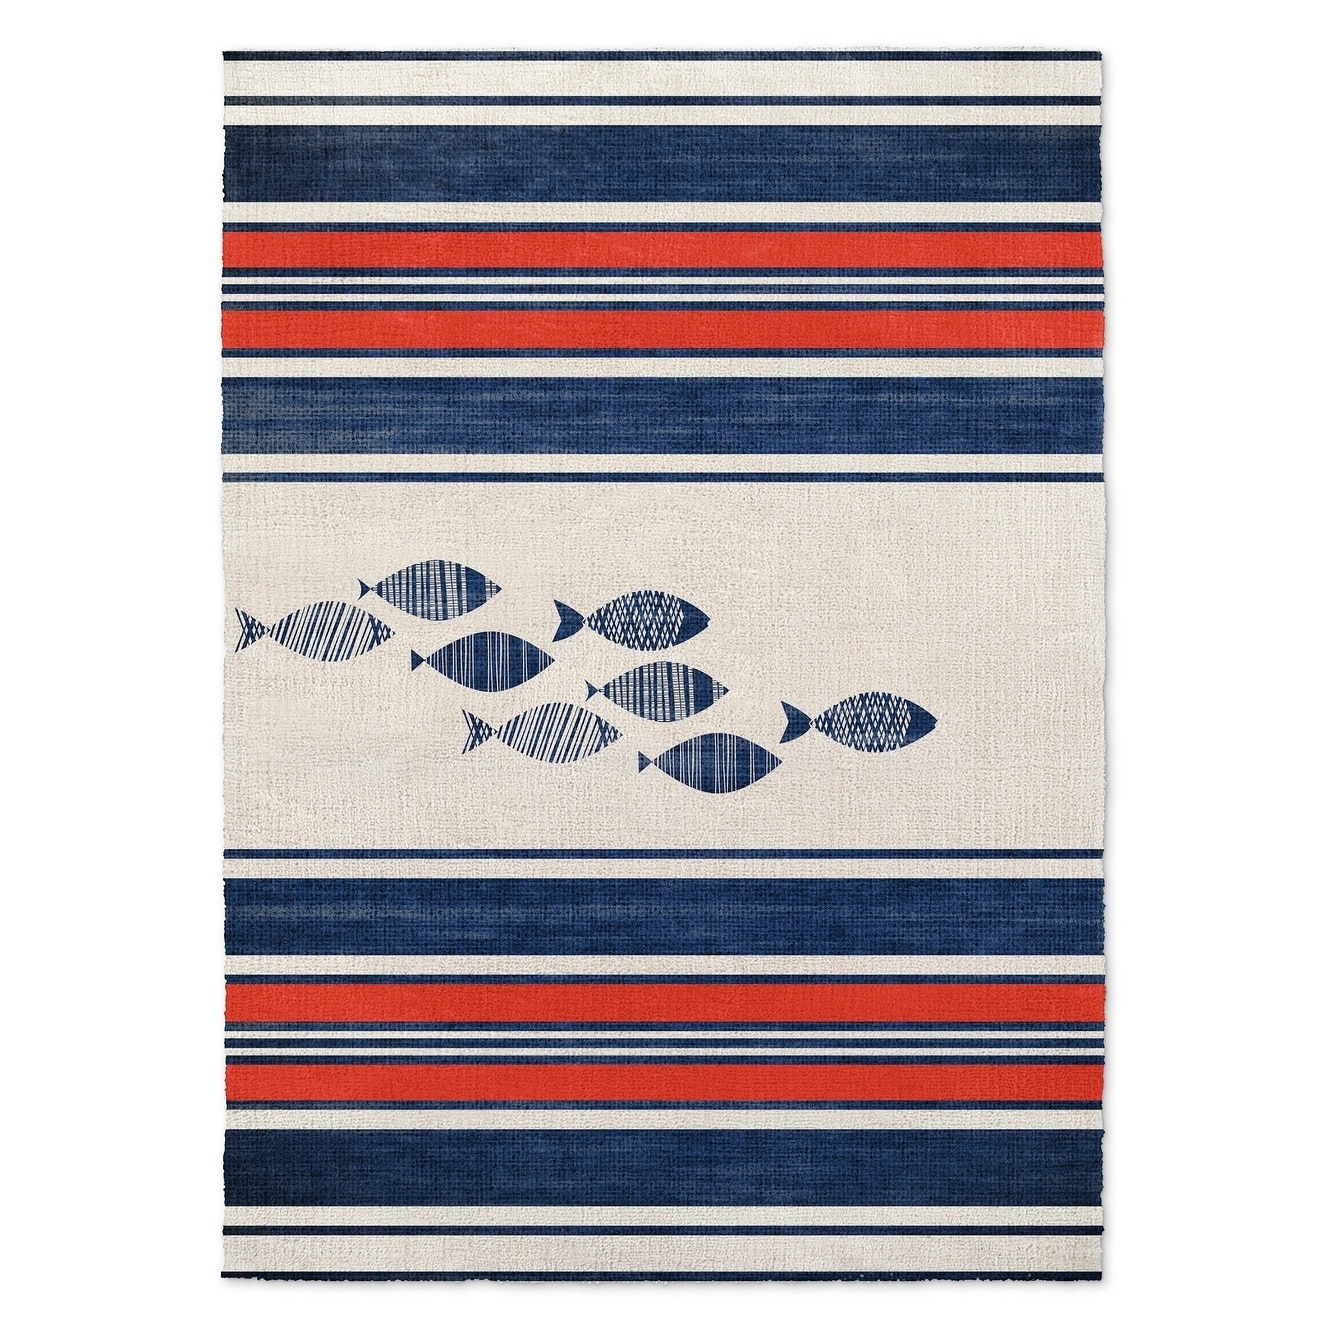 Kavka Designs Blue Fish Blue Red White Accent Rug 2 X 3 2 X 3 Overstock 16925822